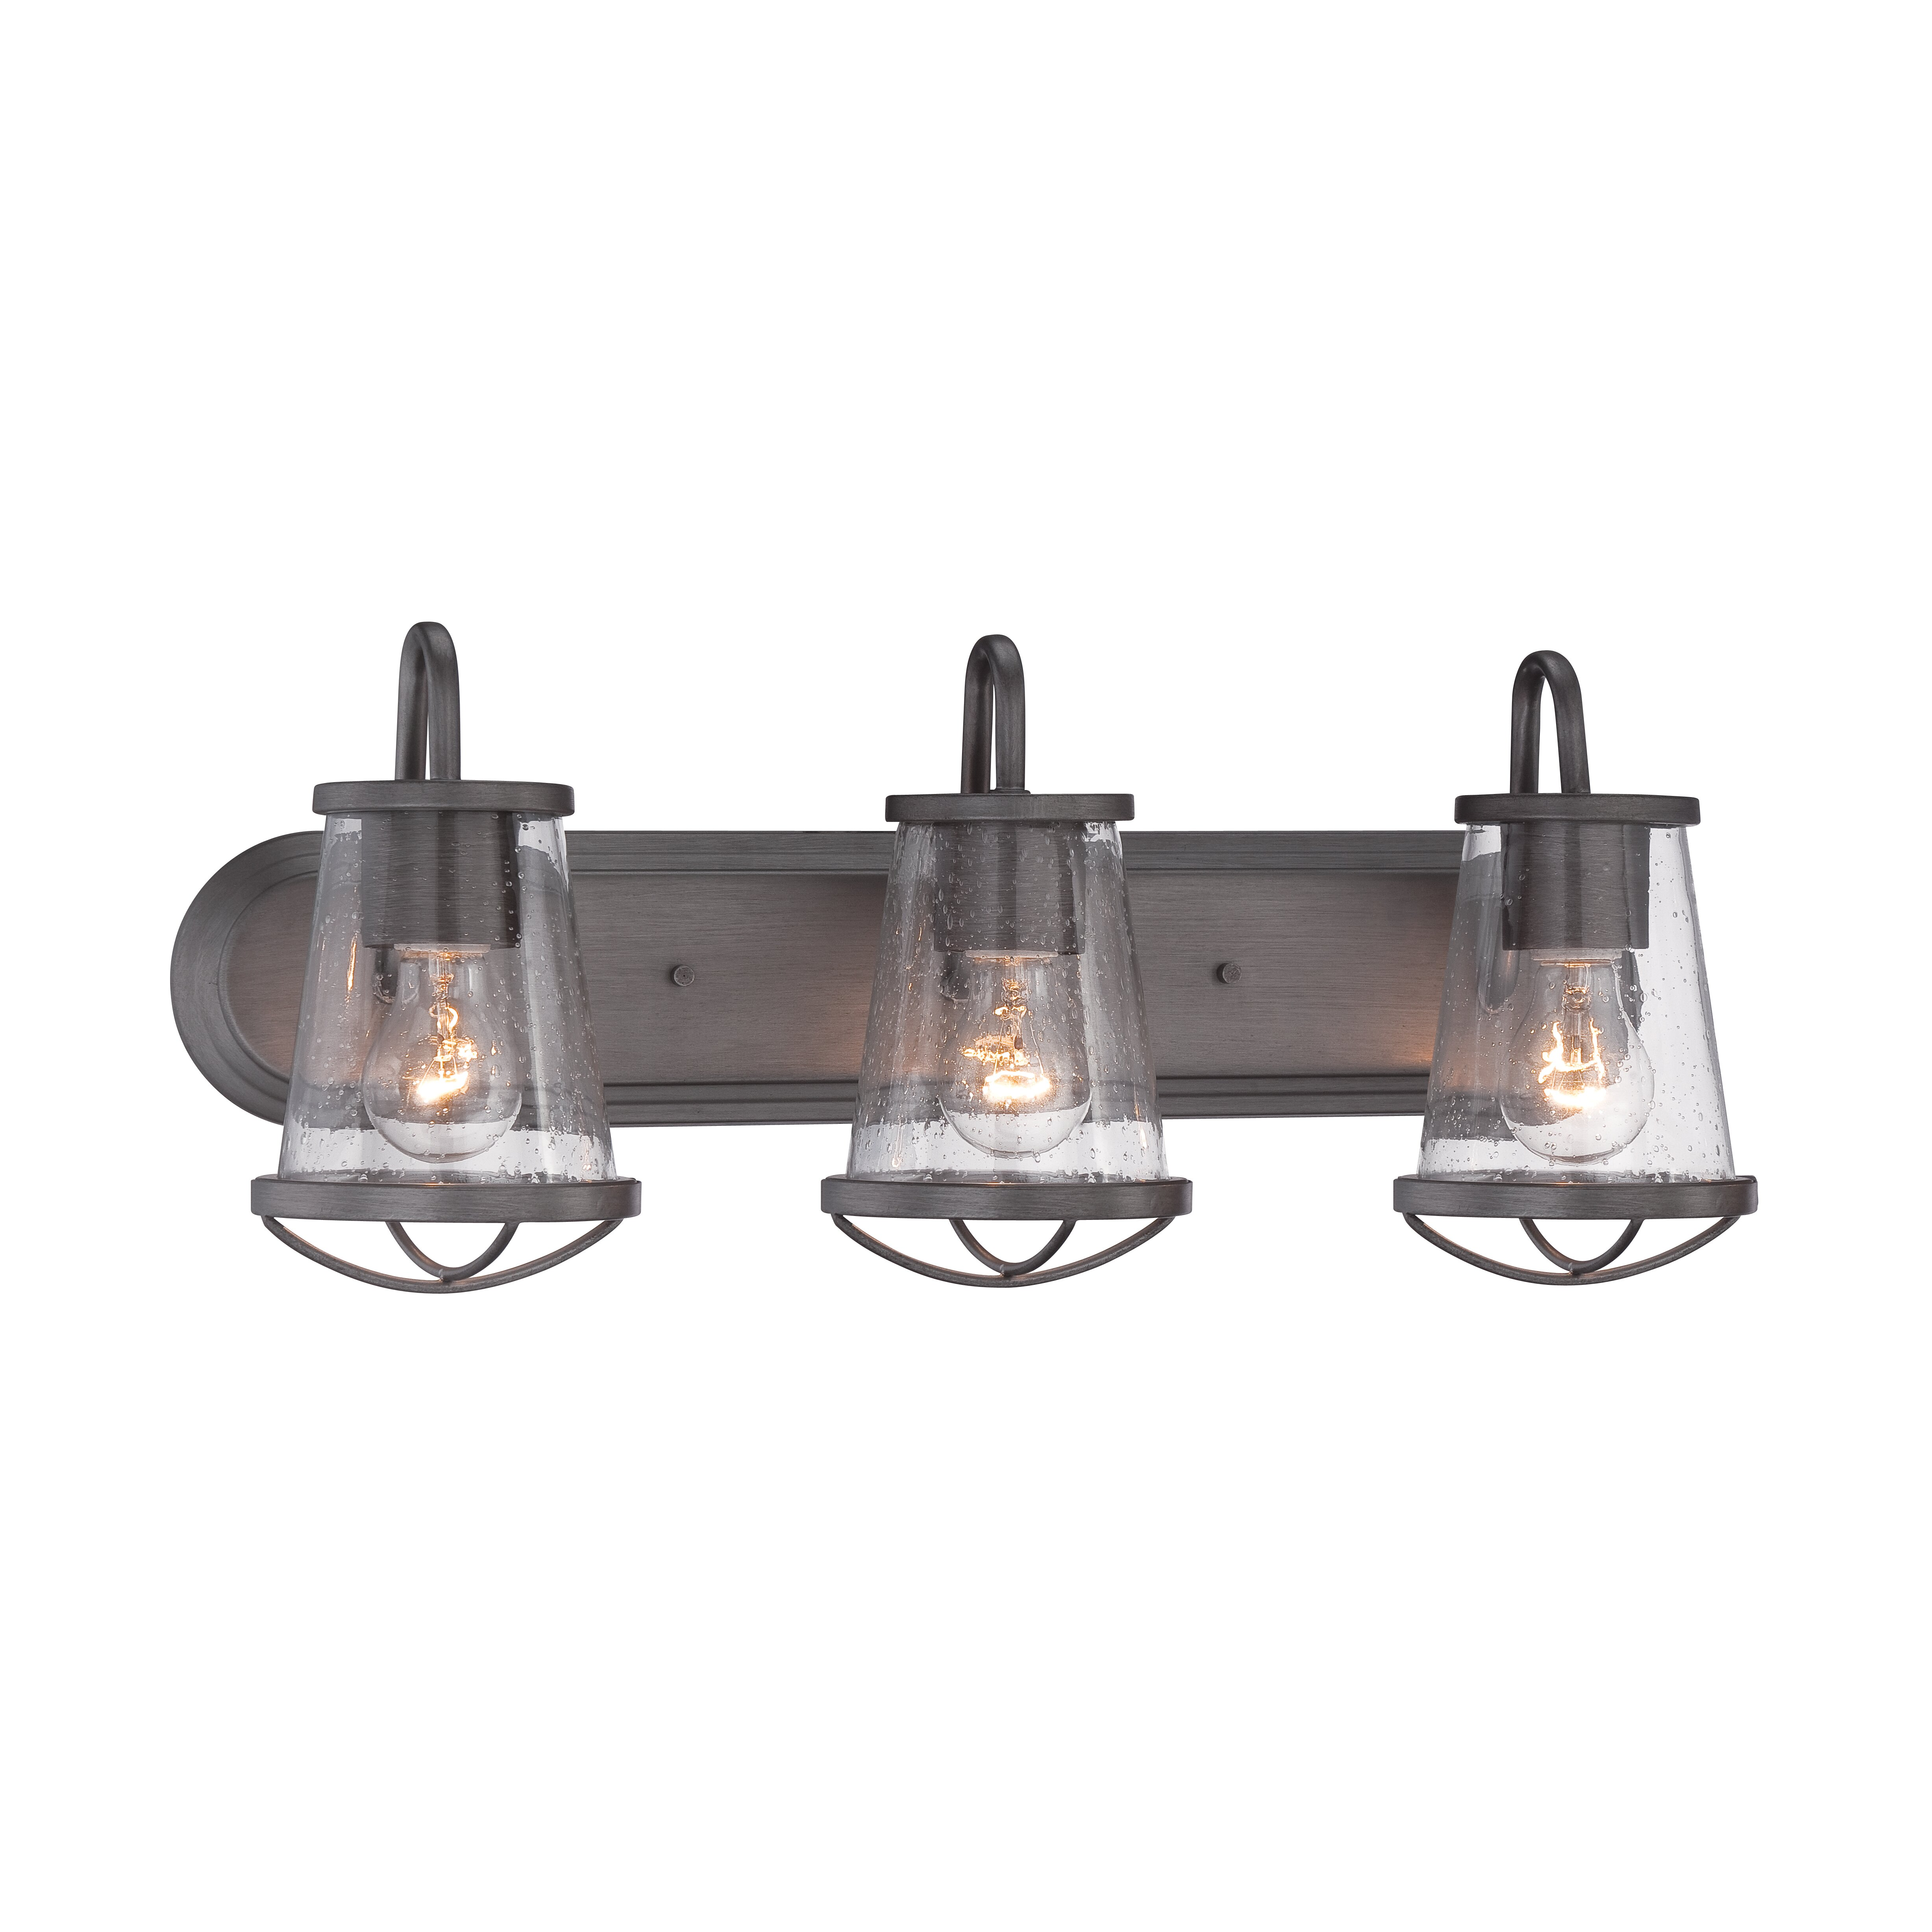 Bathroom Wall Vanity Lights : Designers Fountain Darby 3 Light Vanity Light & Reviews Wayfair